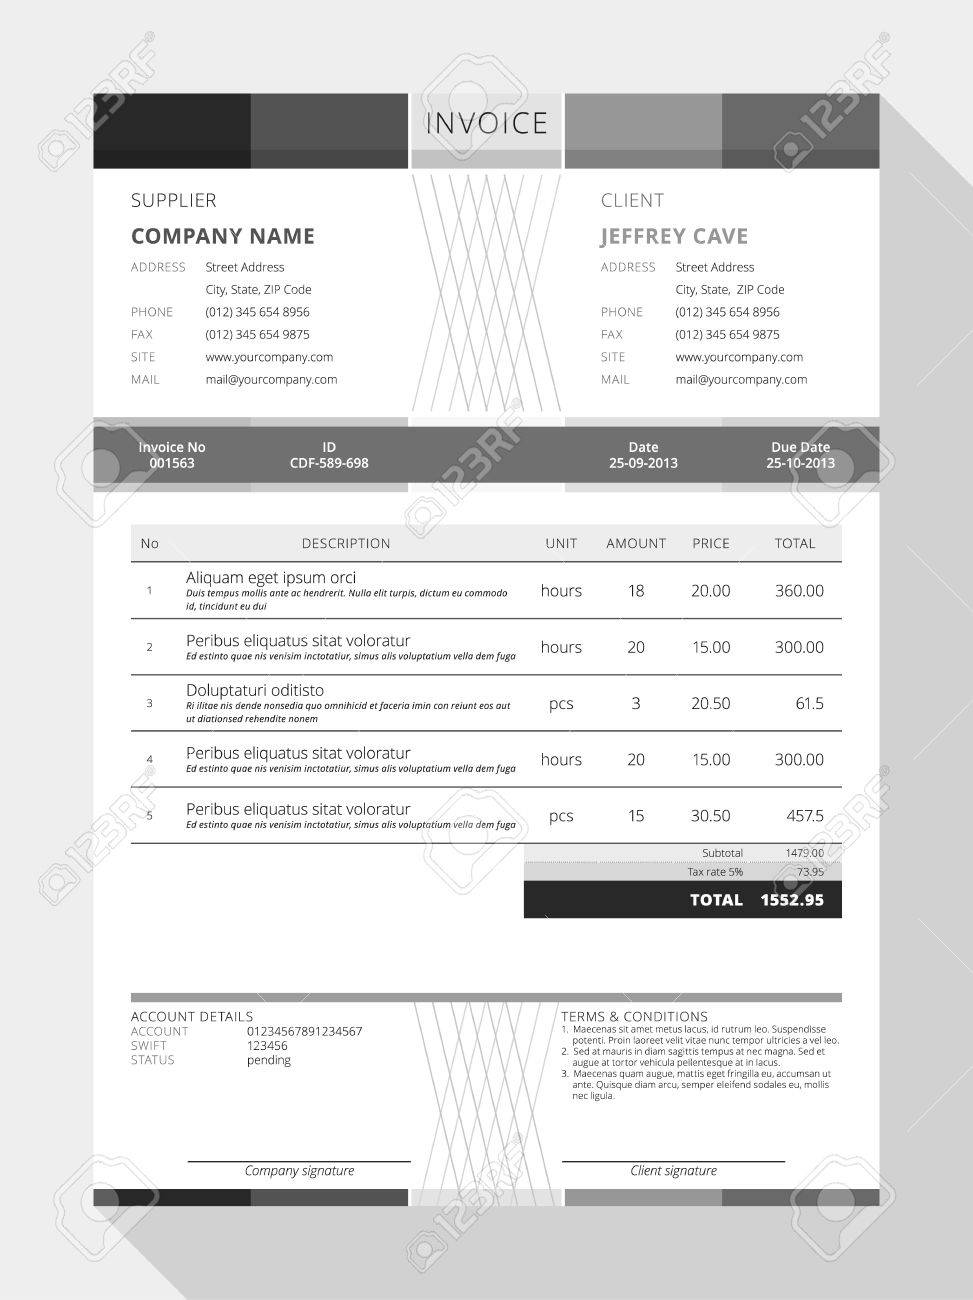 Reliefworkersus  Surprising Design An Invoice  Professional Graphic Design Invoice  With Gorgeous Vector Customizable Invoice Form Template Design Vector   Design An Invoice With Extraordinary Copies Of Invoices Also Construction Invoice Factoring In Addition Pay Invoices And Free Fillable Invoice Template As Well As Invoice Terms And Conditions Example Additionally Lawn Service Invoice Template From Happytomco With Reliefworkersus  Gorgeous Design An Invoice  Professional Graphic Design Invoice  With Extraordinary Vector Customizable Invoice Form Template Design Vector   Design An Invoice And Surprising Copies Of Invoices Also Construction Invoice Factoring In Addition Pay Invoices From Happytomco